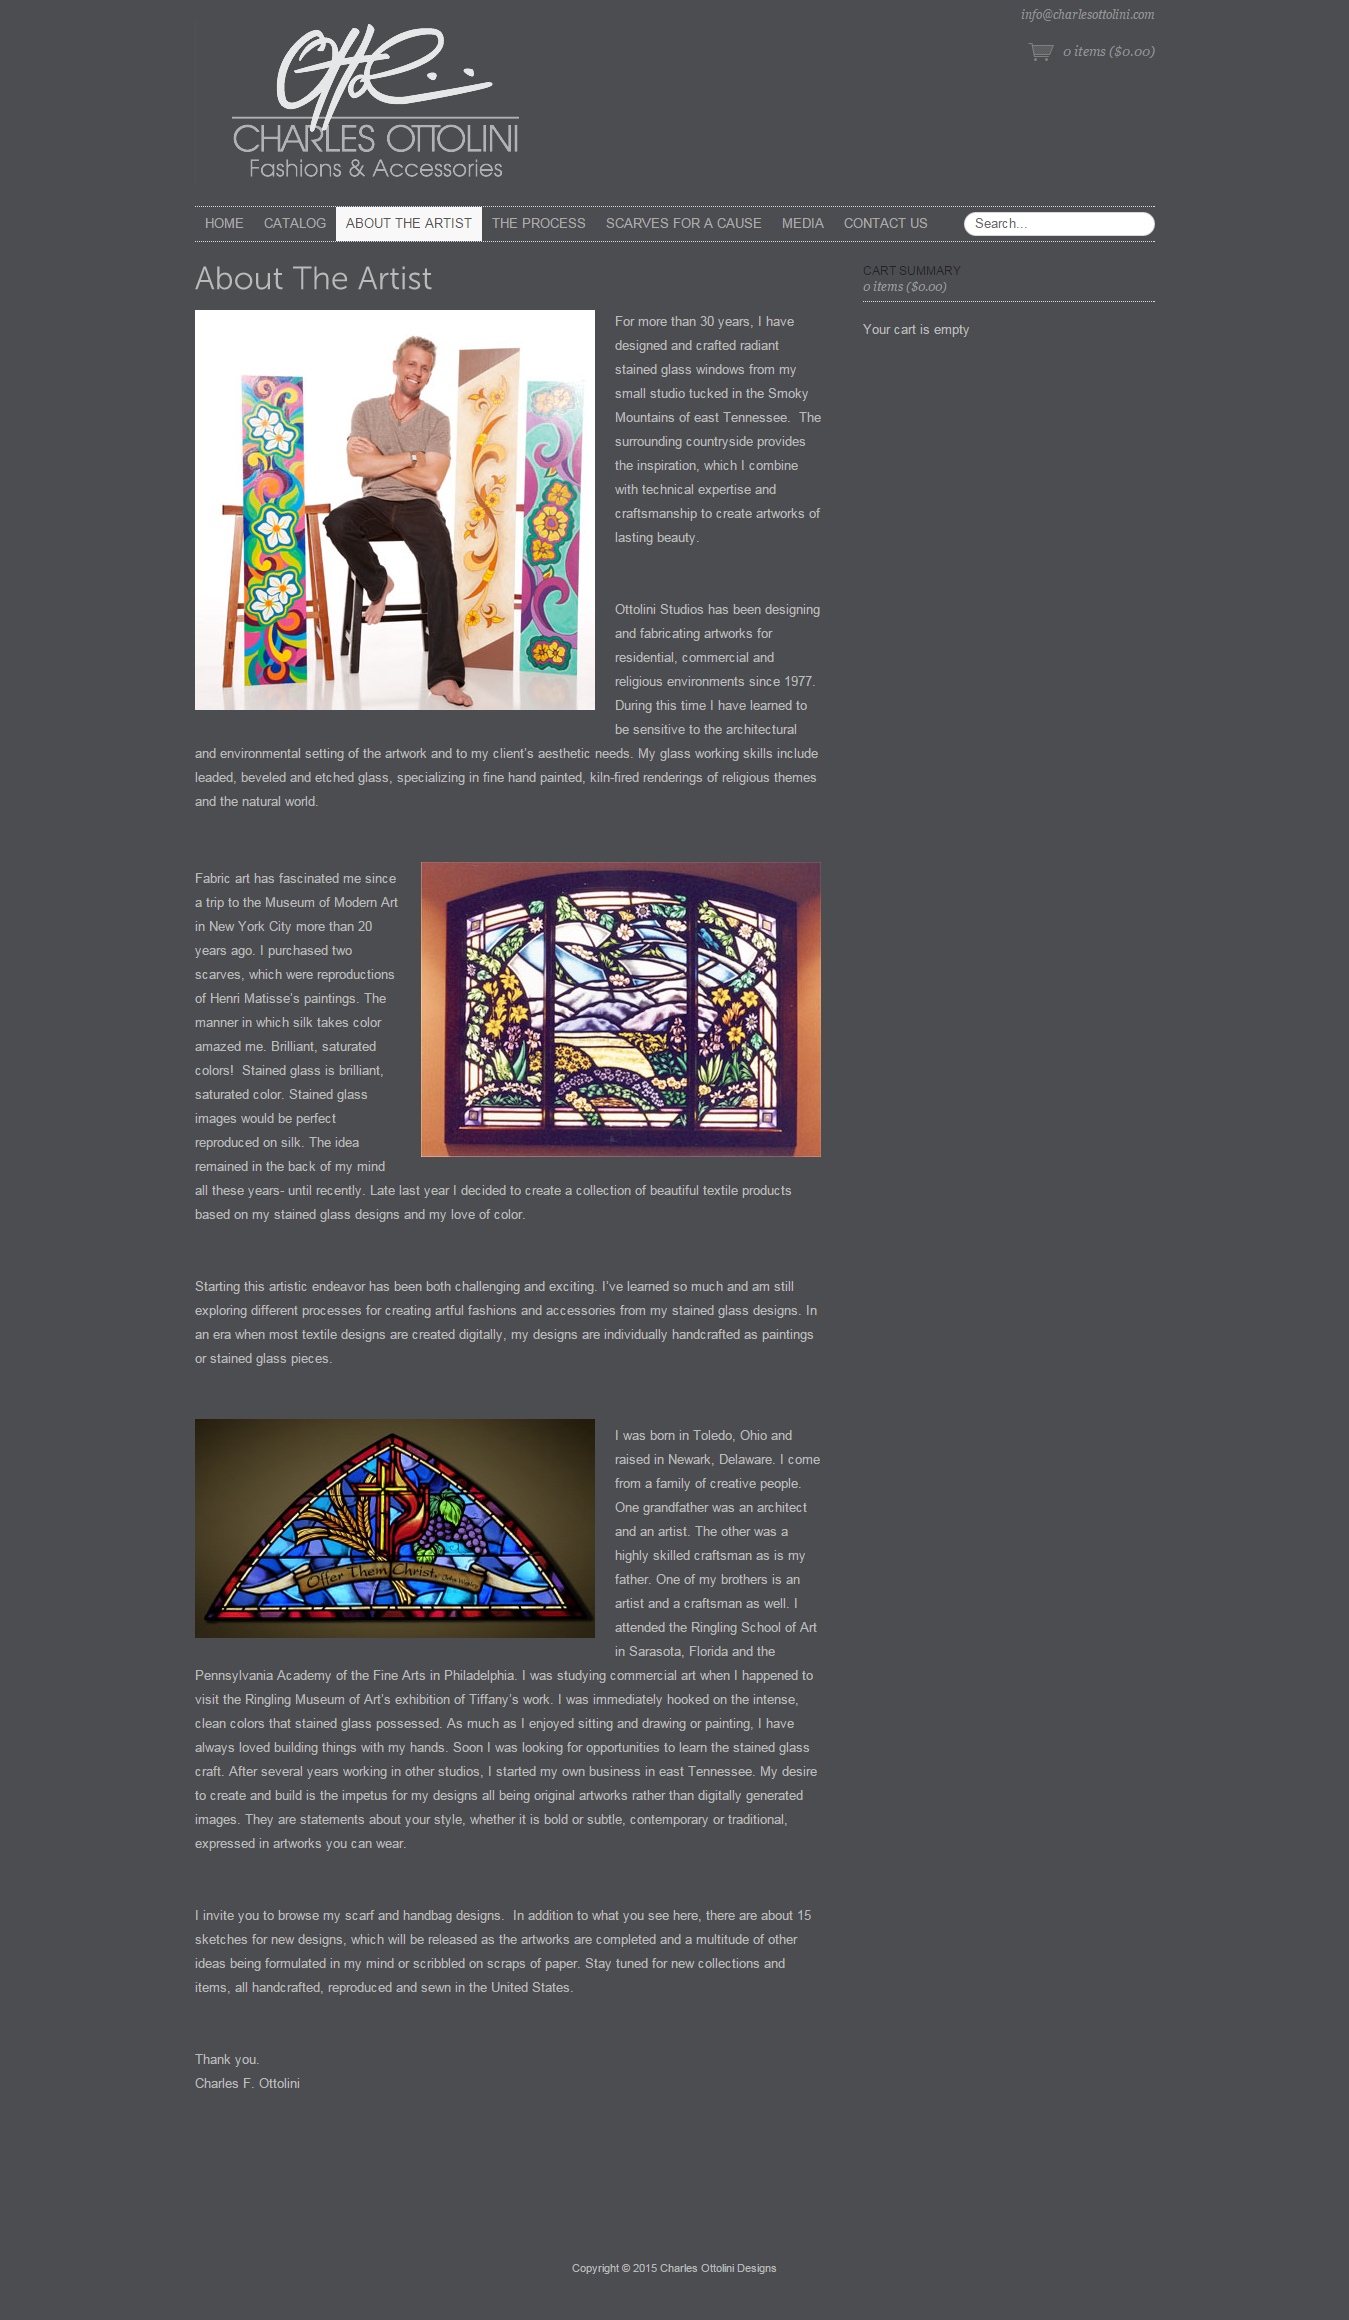 Charles Ottolini Designs Page